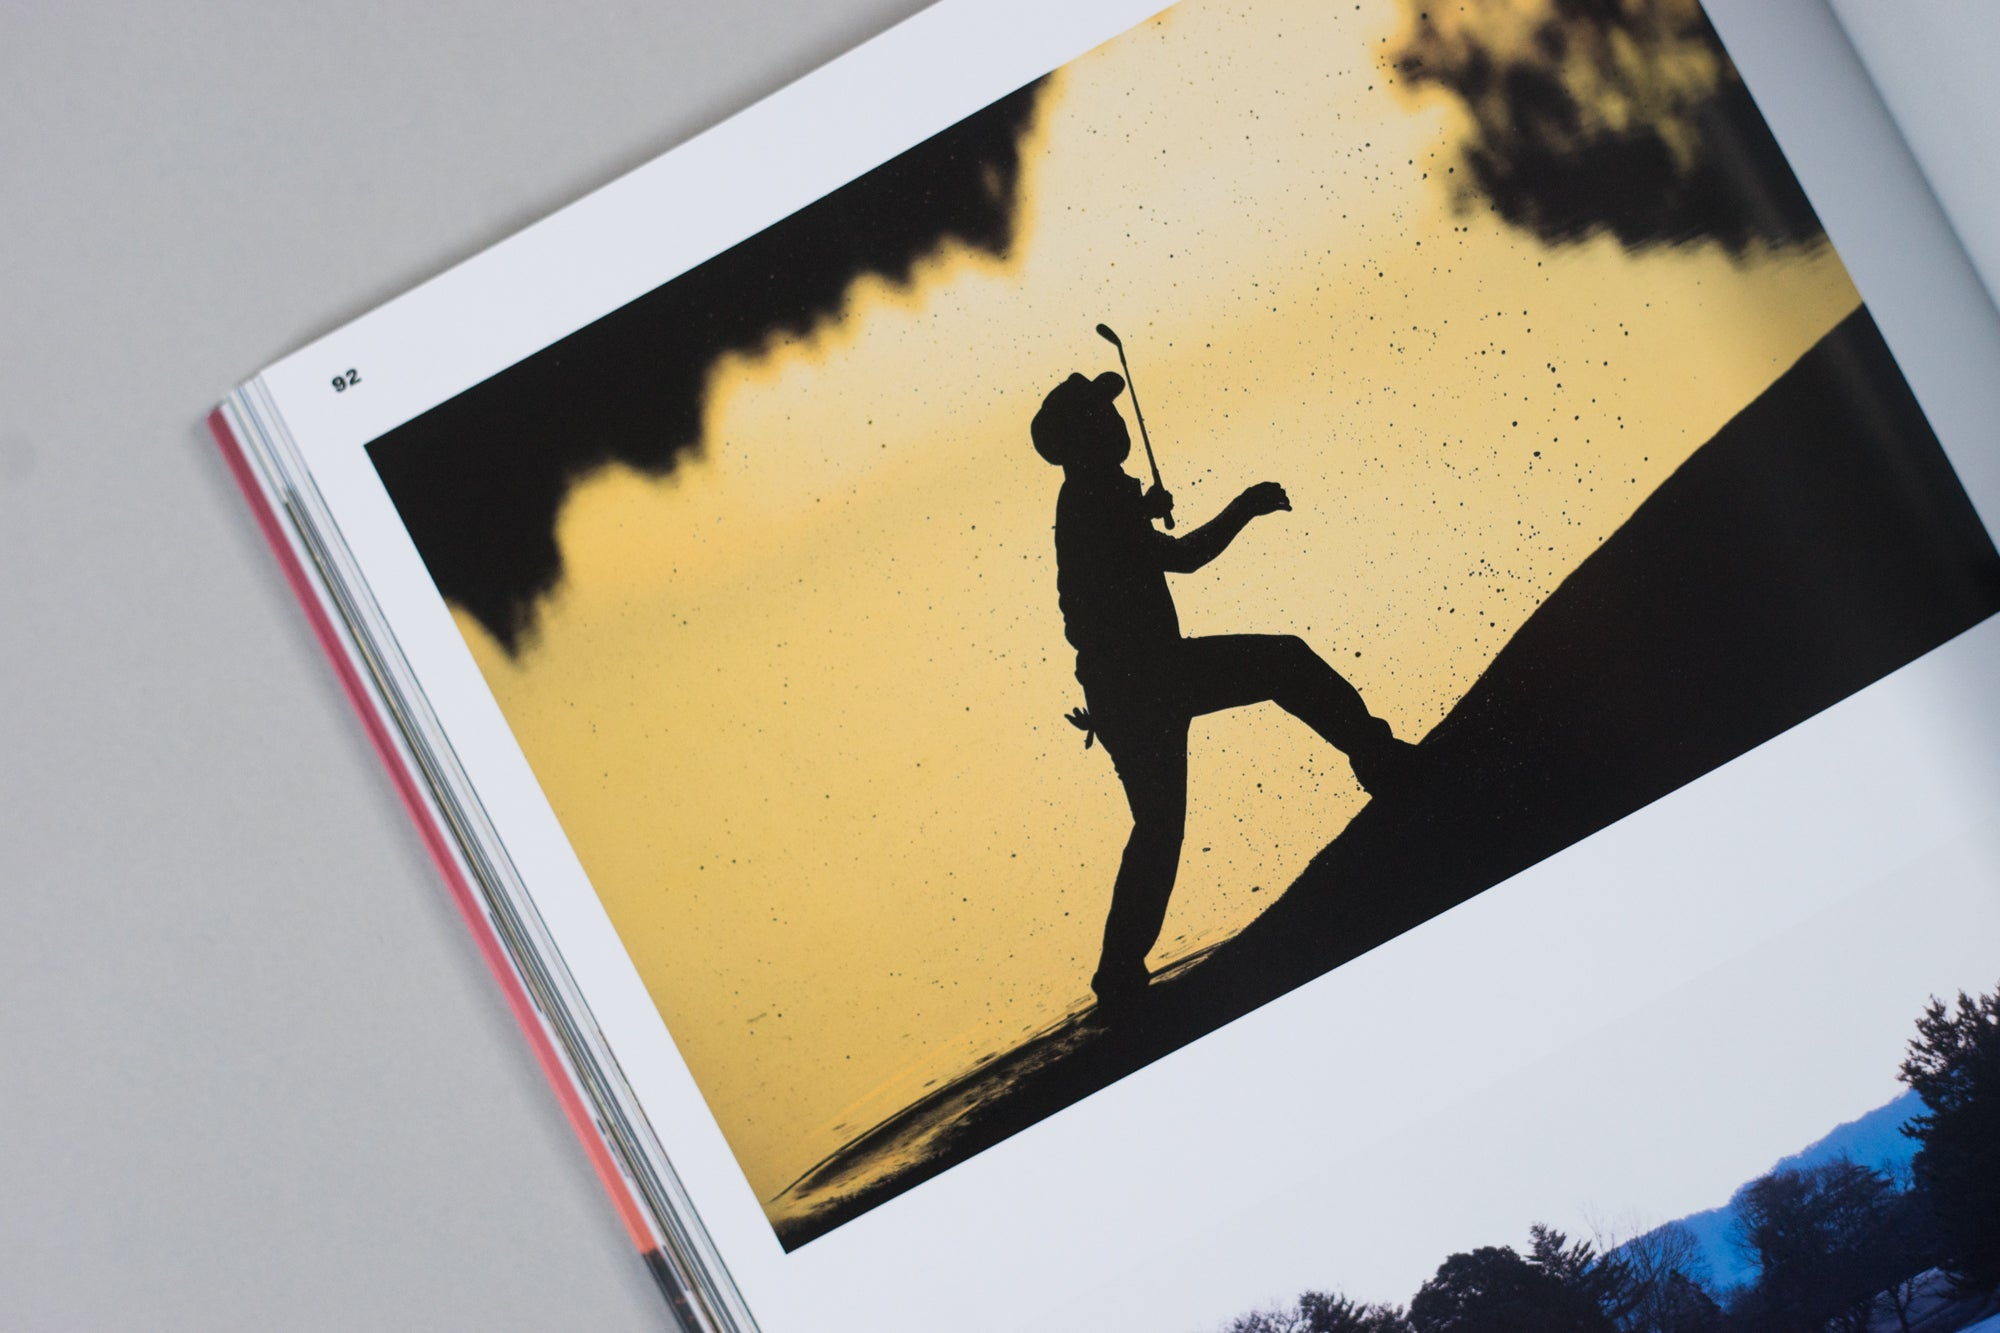 A golfer photographed within The Golfer's Journal Issue 6